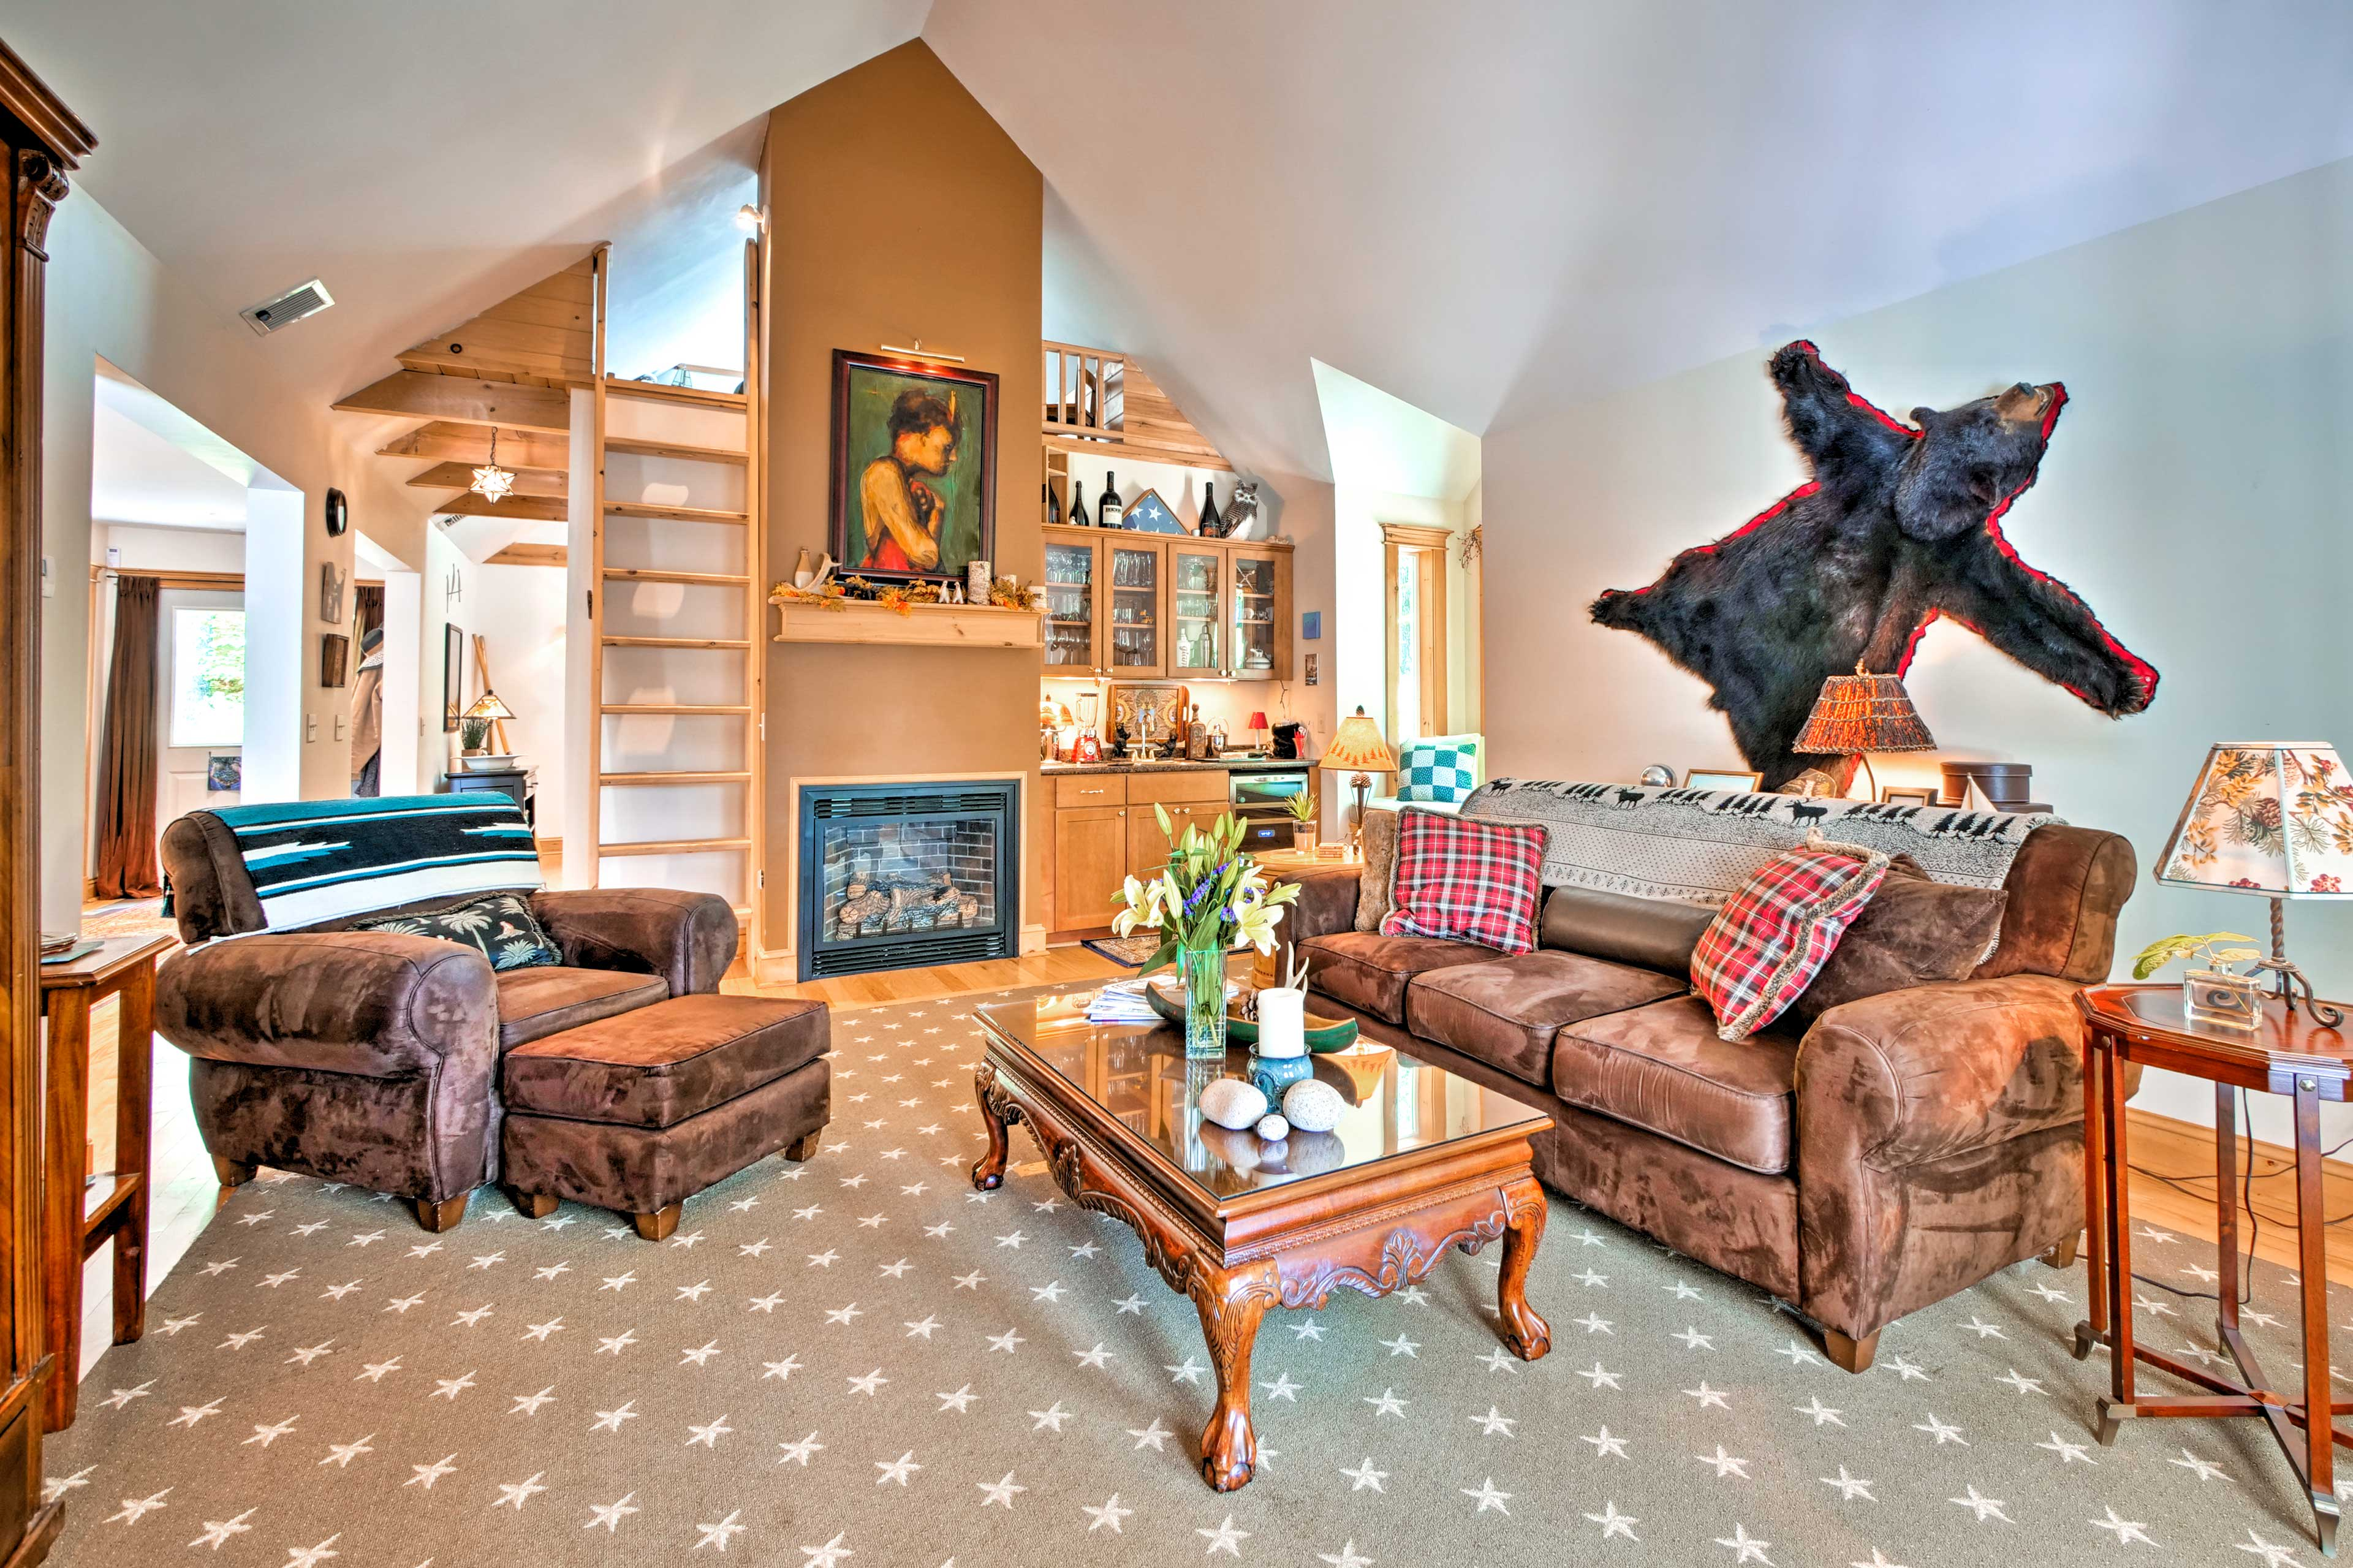 This vacation rental home sleeps 6 in beds and is perfect for a family!